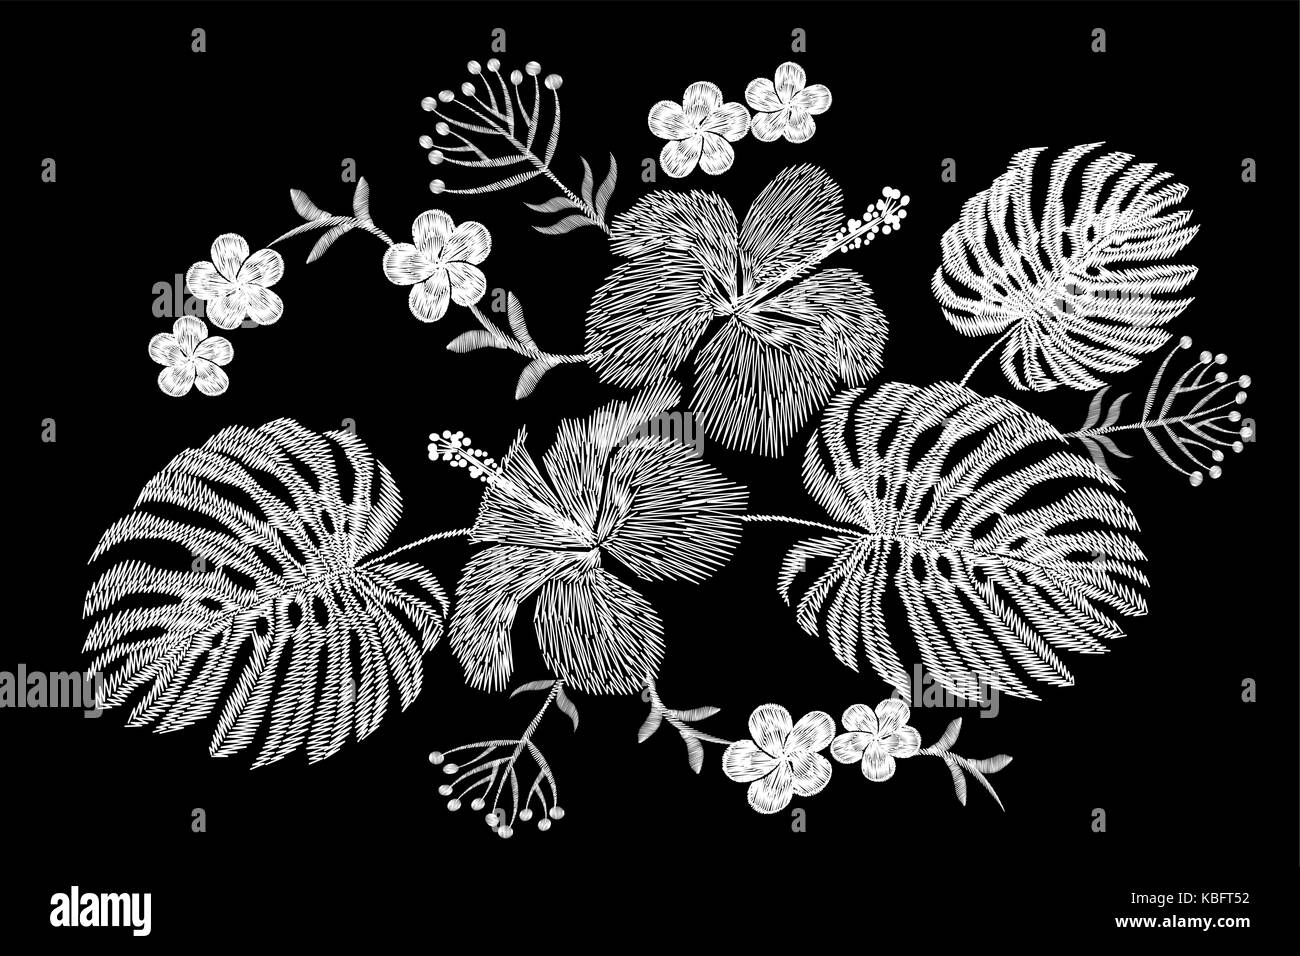 Tropical Embroidery Flower Arrangement Exotic Plant Blossom Summer